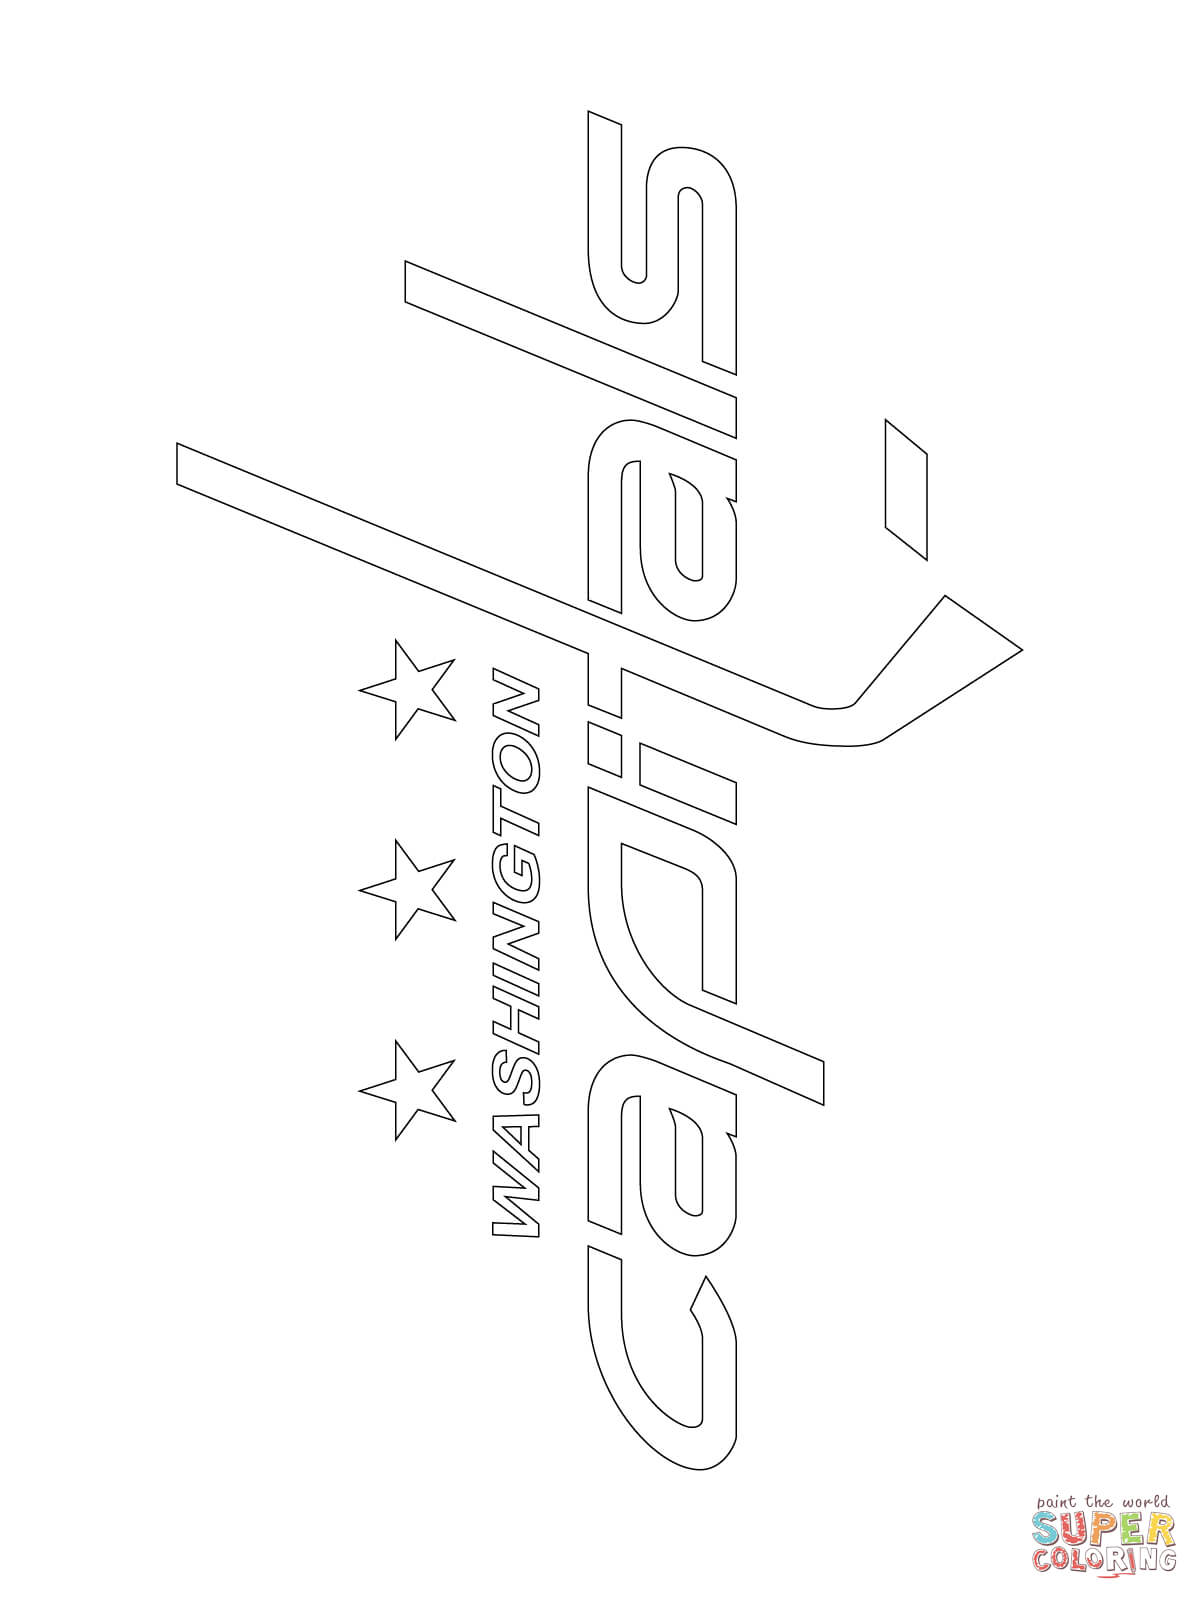 Washington Capitals Logo Coloring Page